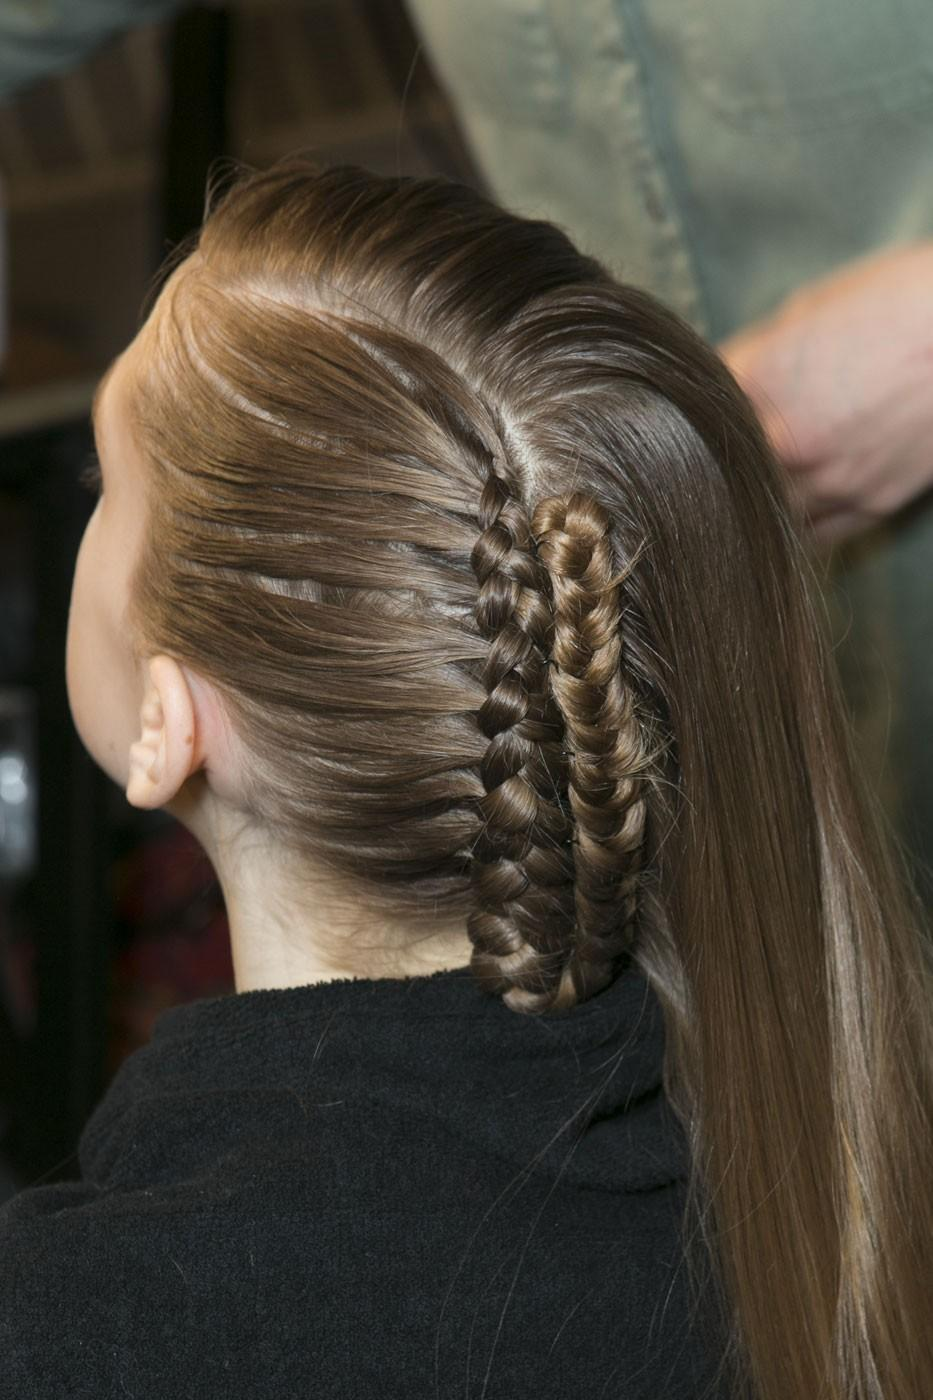 """<div class=""""caption-credit""""> Photo by: Stylecaster Pictures</div>At Alexandre Herchcovitch, braids were kept close to the head while half of the hair was kept free for a loose, side flow. <br>"""